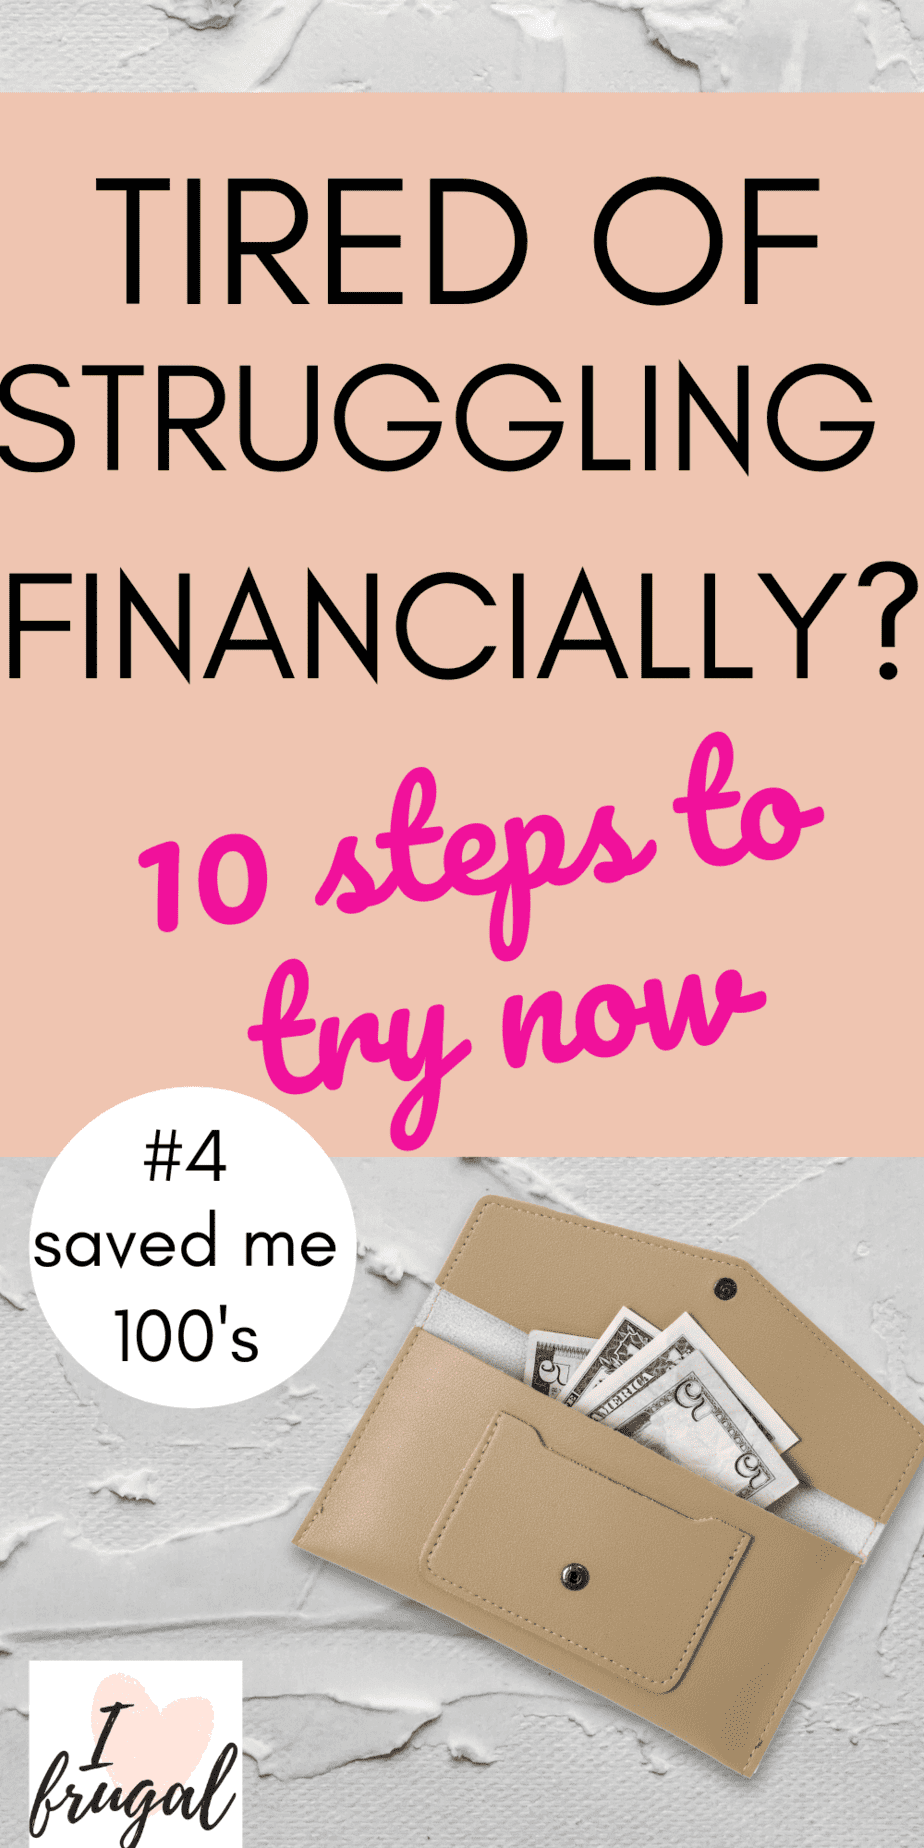 Are you tired of struggling financially?